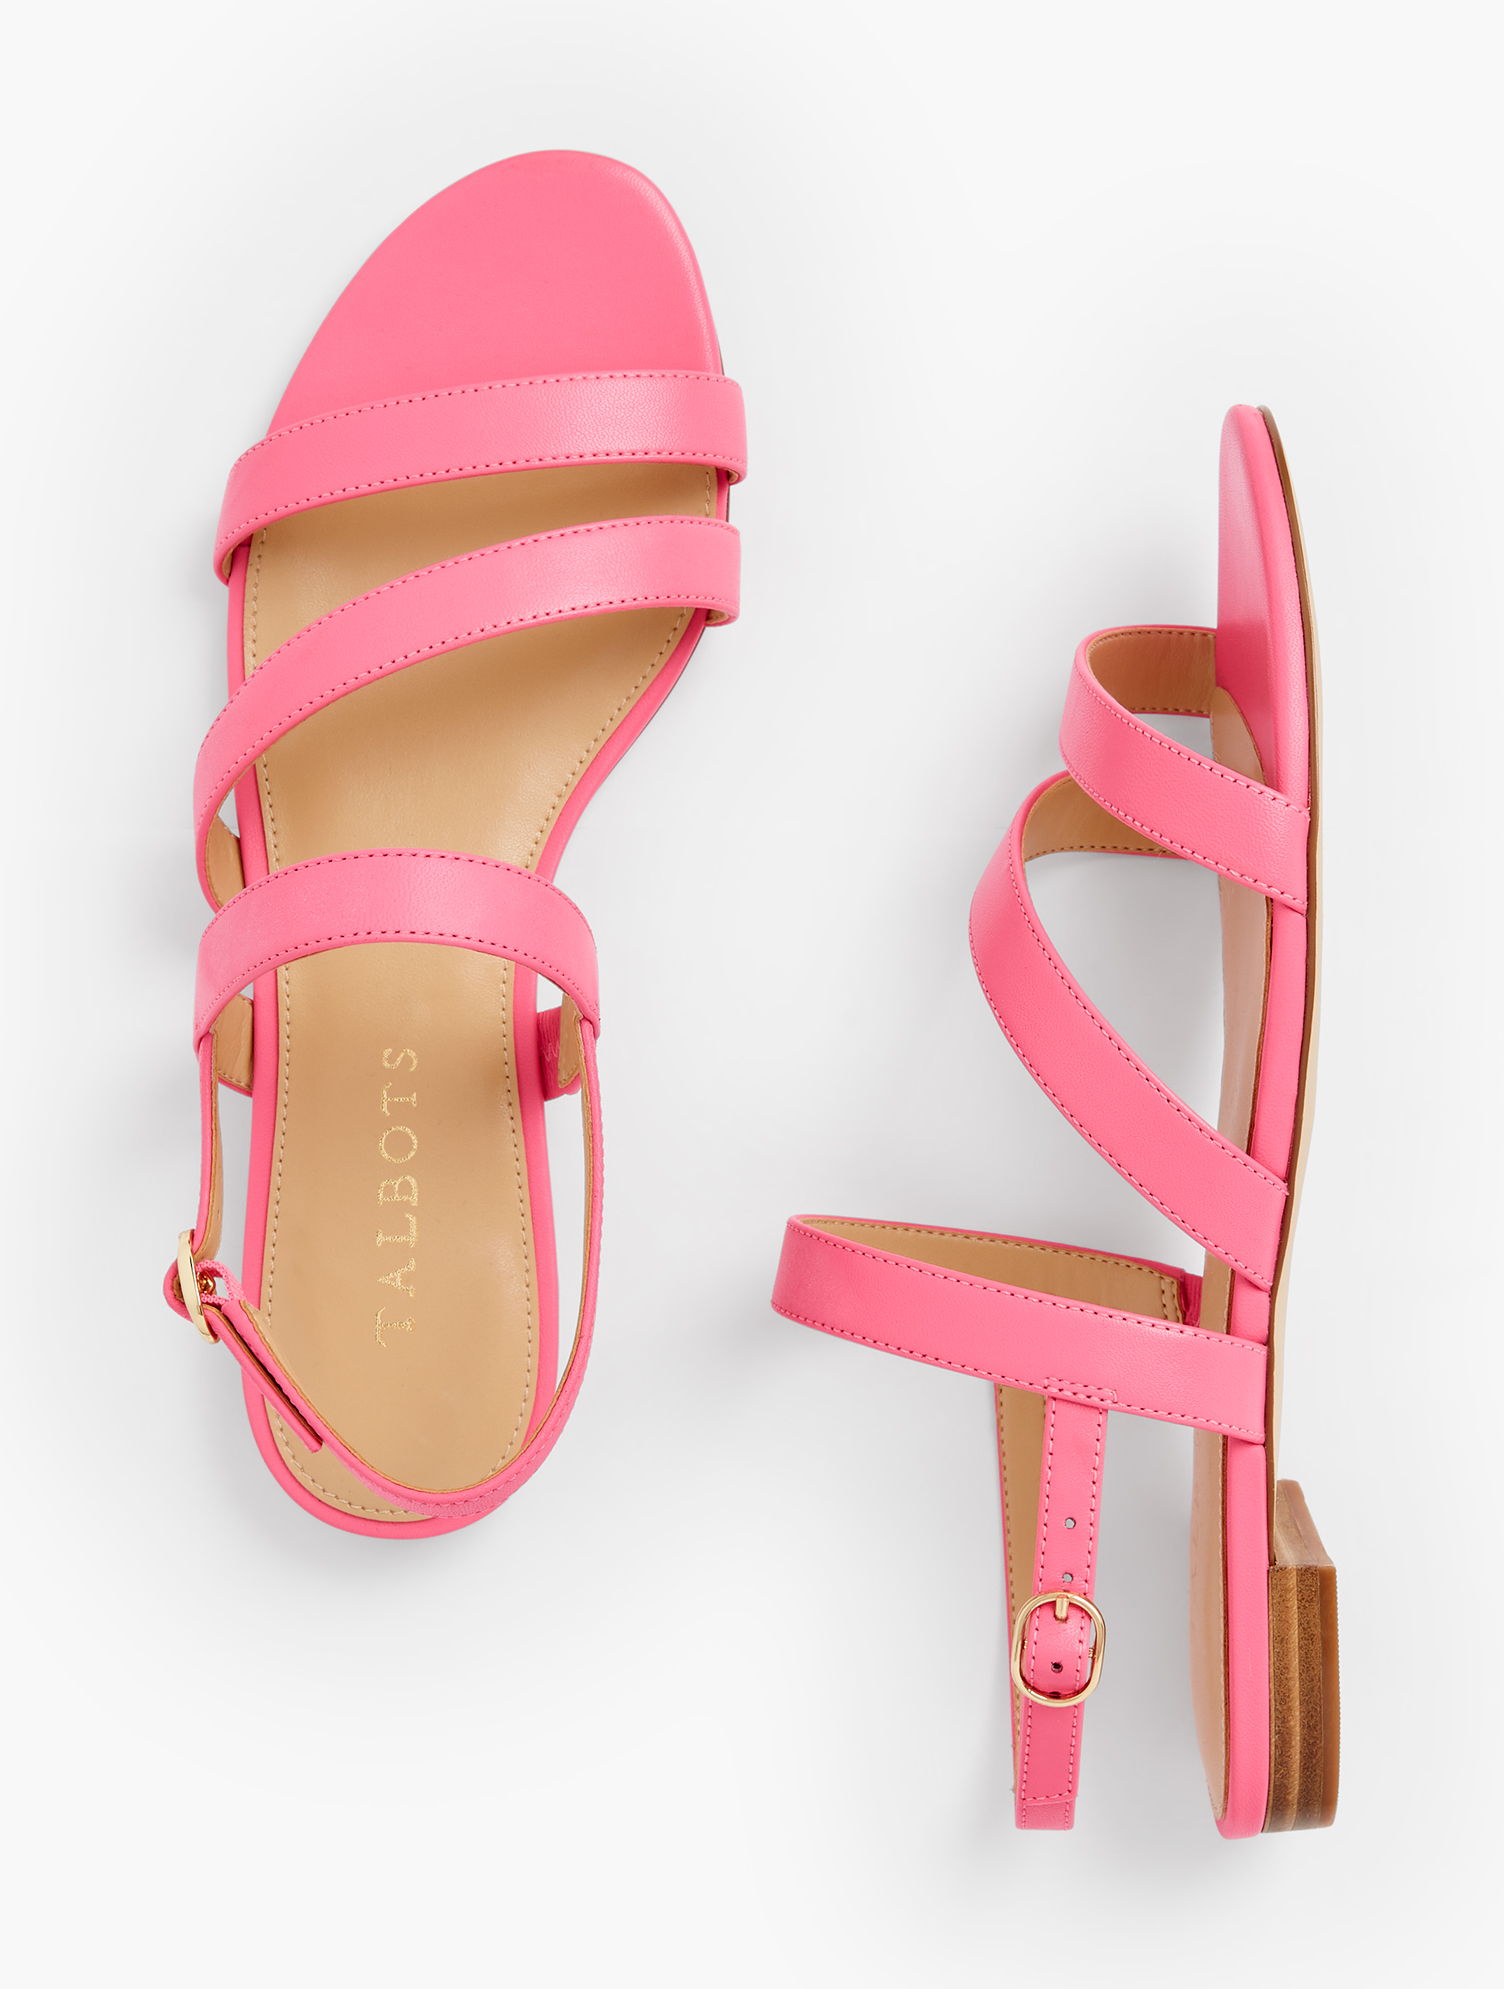 Easy elegance. Our Keri multi-strap sandals were made to be worn dressy or casual. Features Gift Box/Gift Wrap is not available for this item 1/2 inches heel Flexible Non Skid Outsole 9k Shiny Gold Hardware 3Mm Memory Foam Footbed Imported Material: 100% Leather Keri Multi Strap Sandals - Nappa - Geranium Pink - 9M Talbots